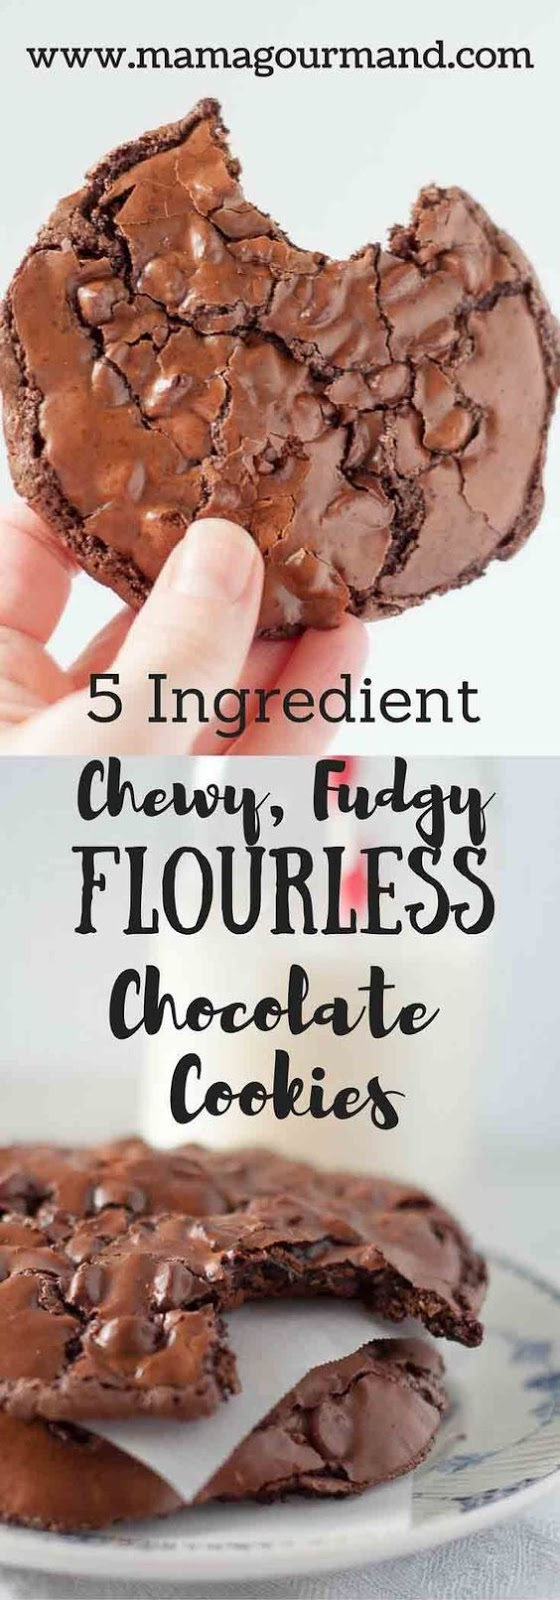 KETO Chewy, Fudgy Flourless Chocolate Cookies